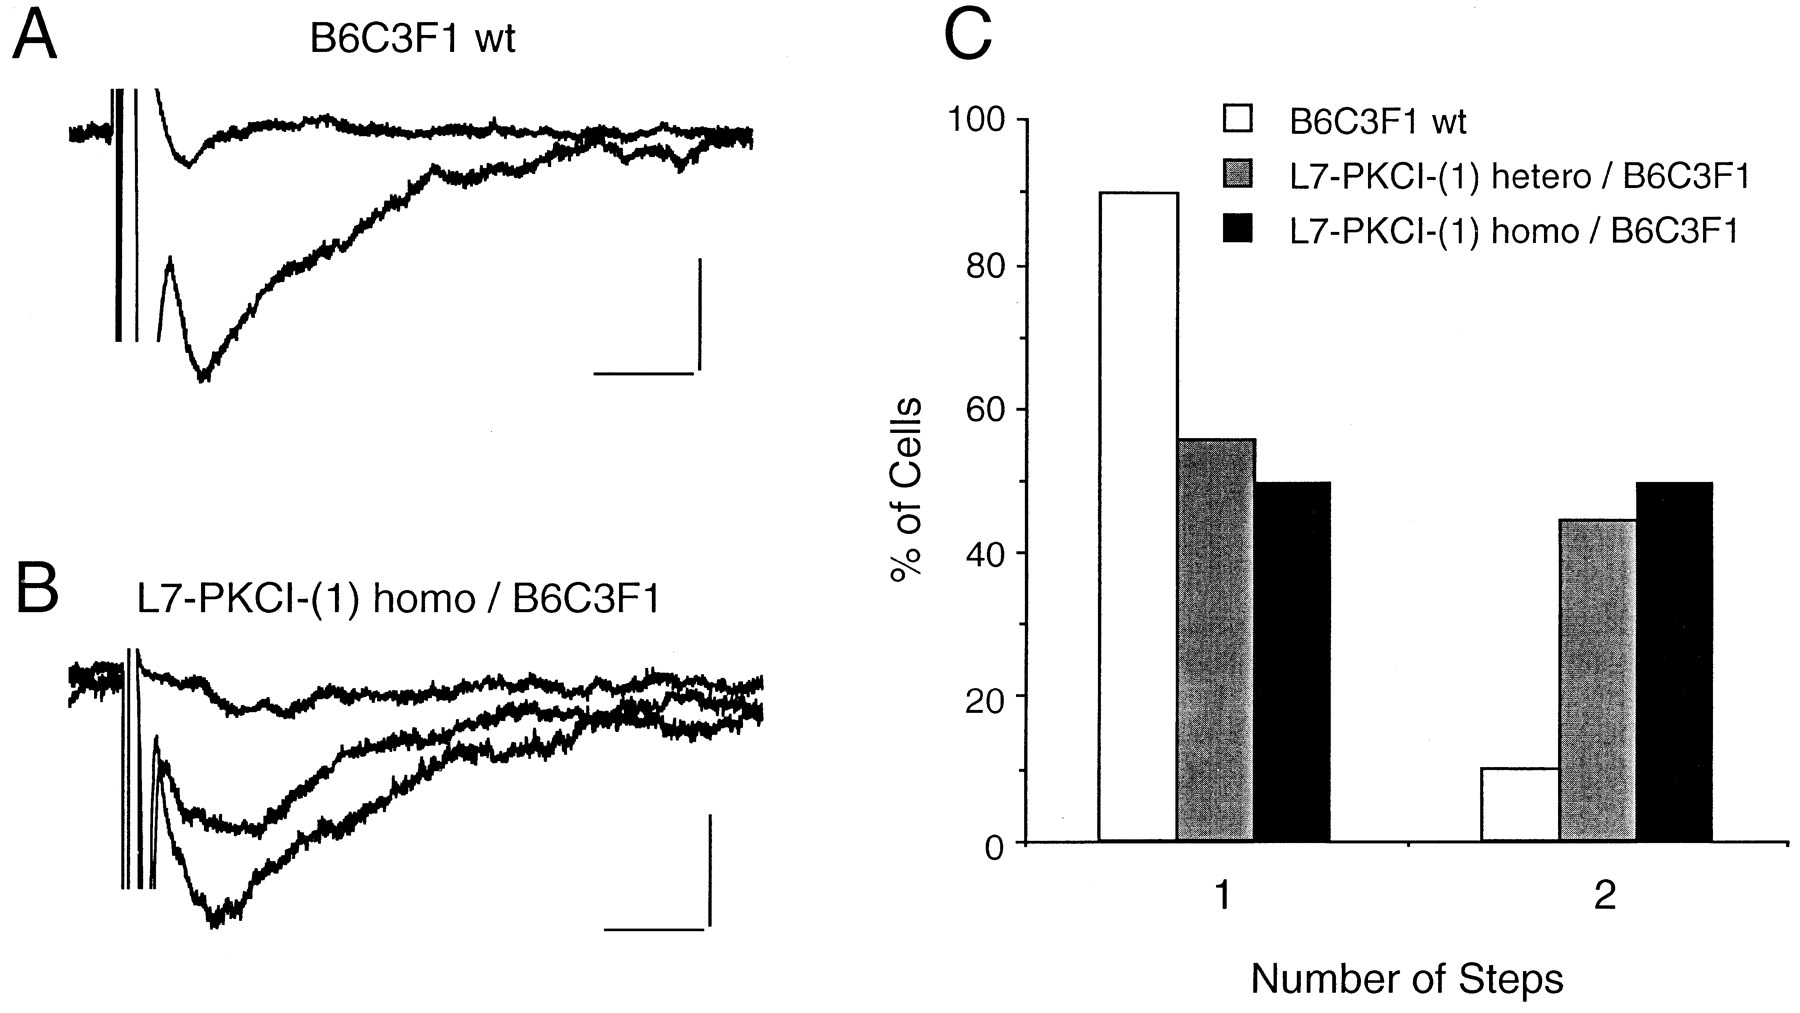 Expression of a Protein Kinase C Inhibitor in Purkinje